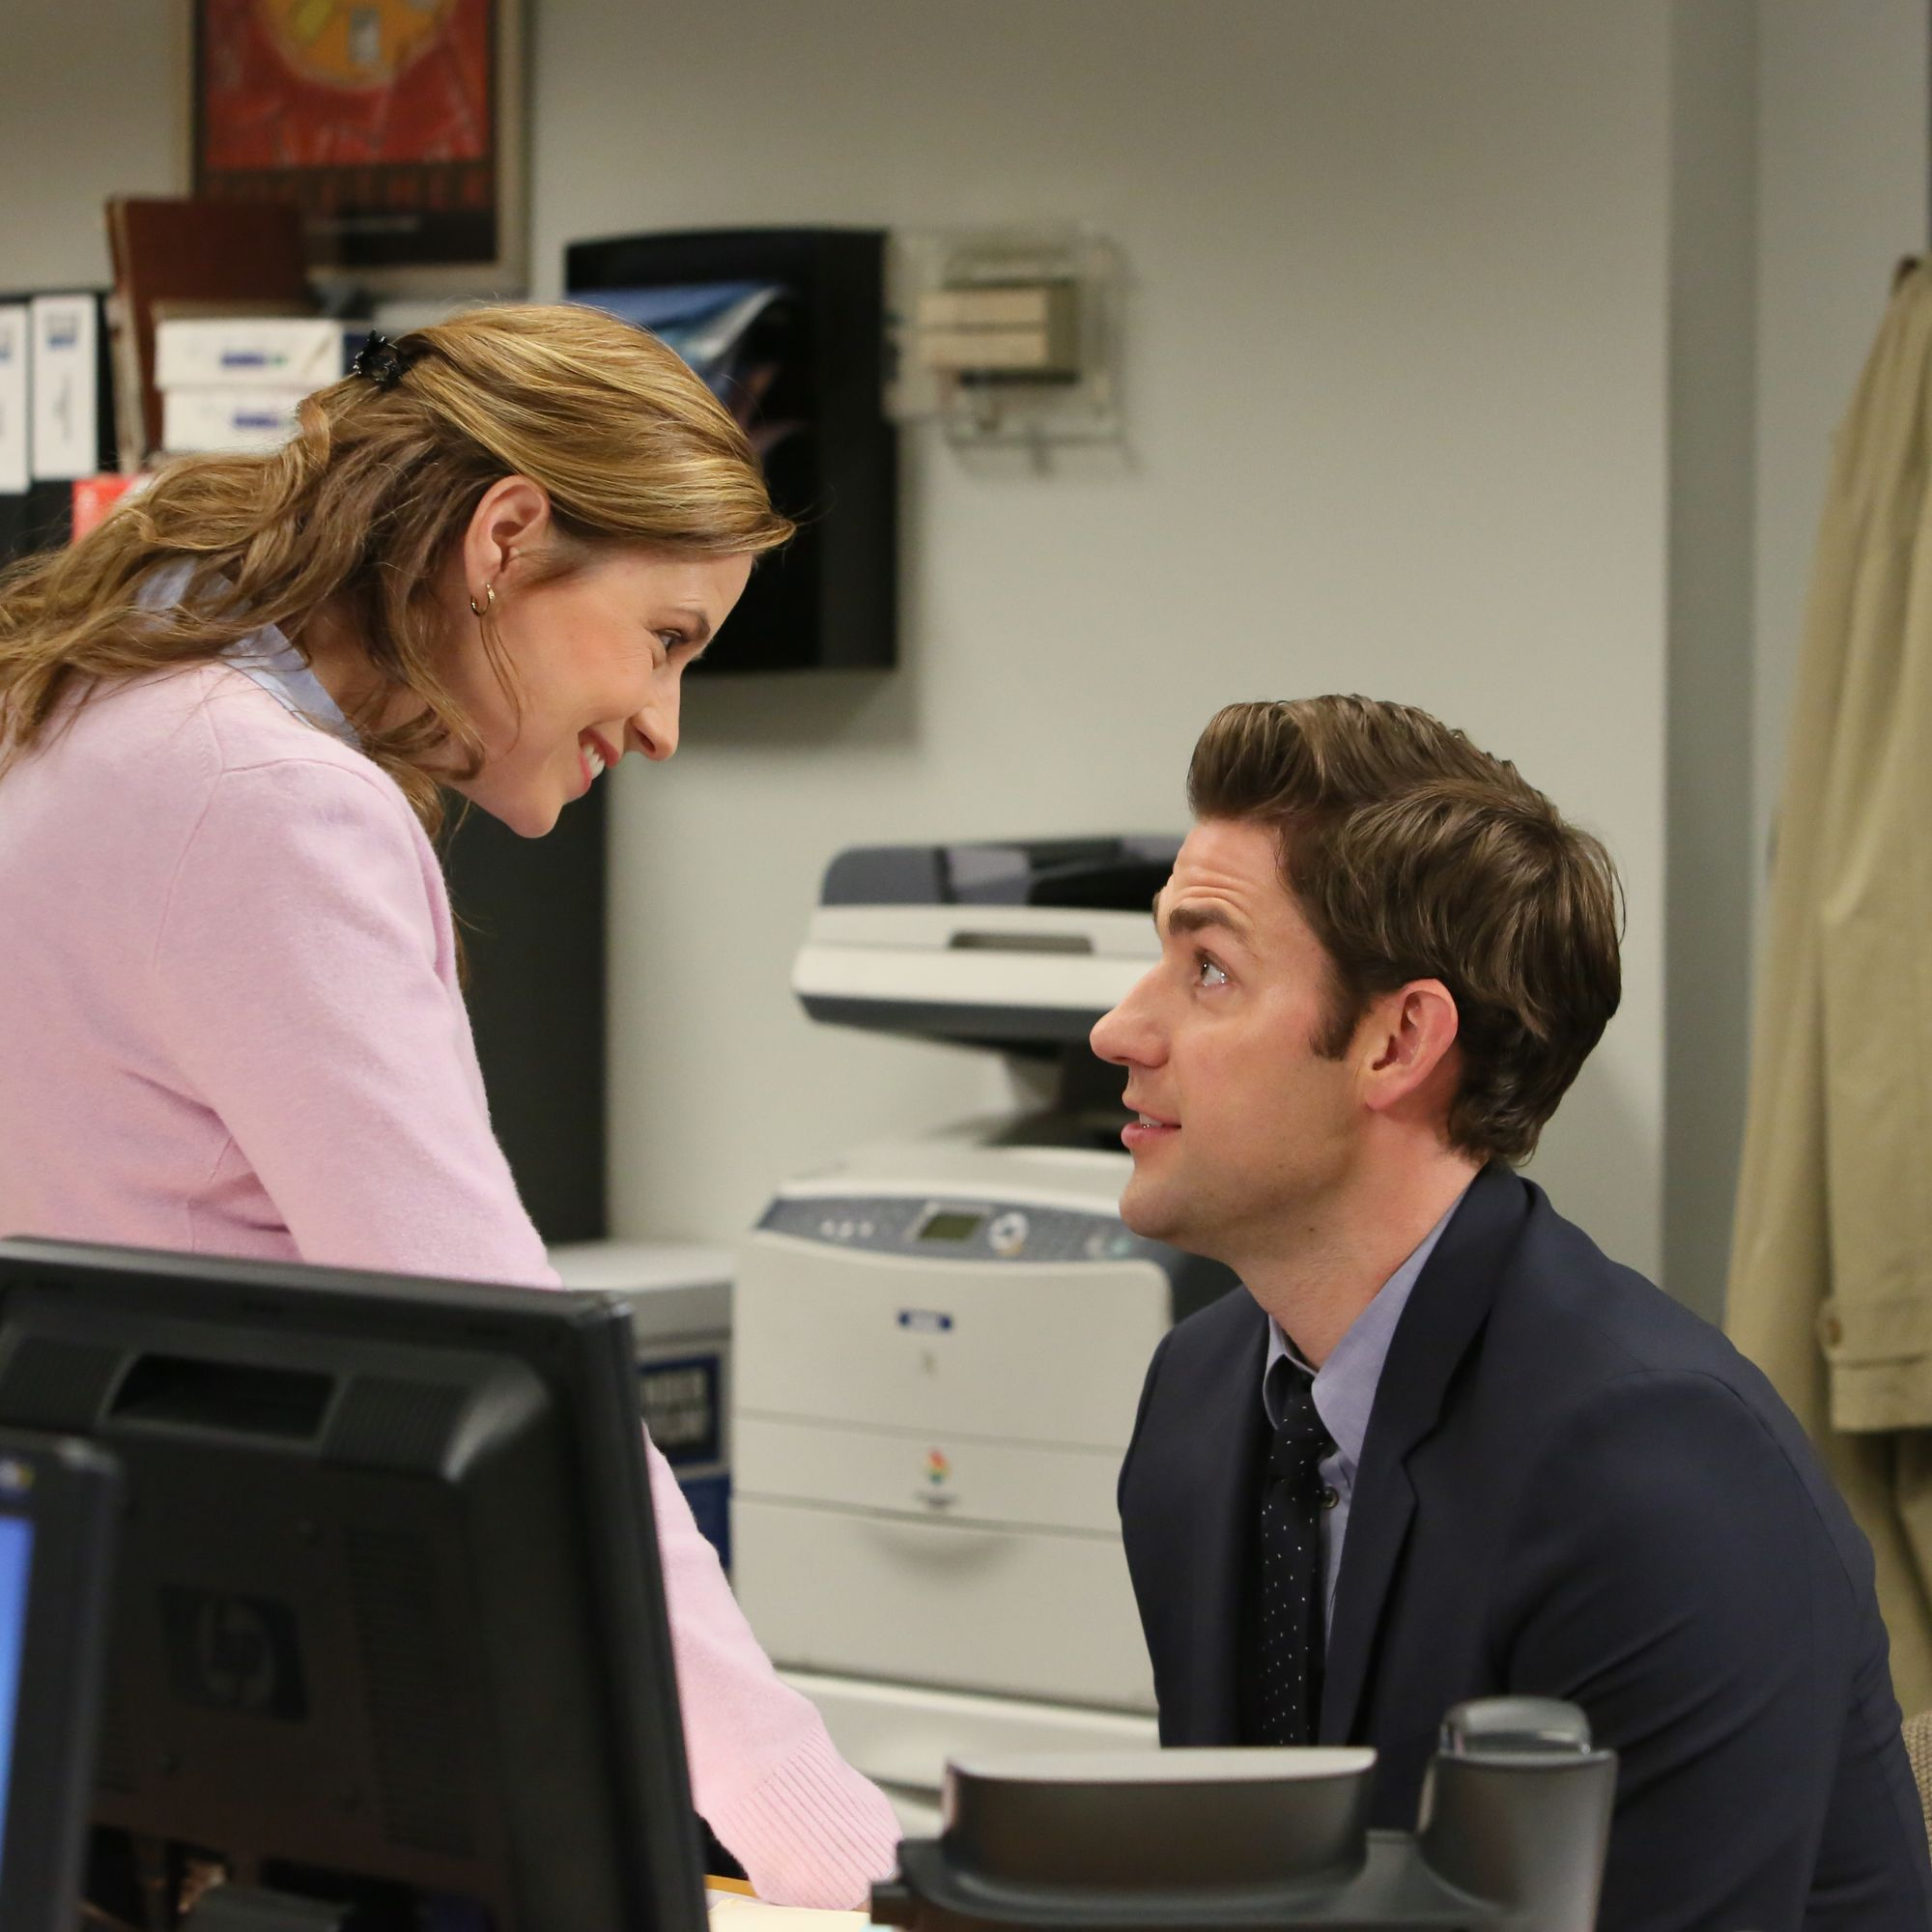 <p>After years of&nbsp&#x3B;knowing looks, air high-fives&nbsp&#x3B;and painfully adorable missed opportunities, Jim and Pam finally got together and proved love can happen in the most unlikely of places.&nbsp&#x3B;</p>